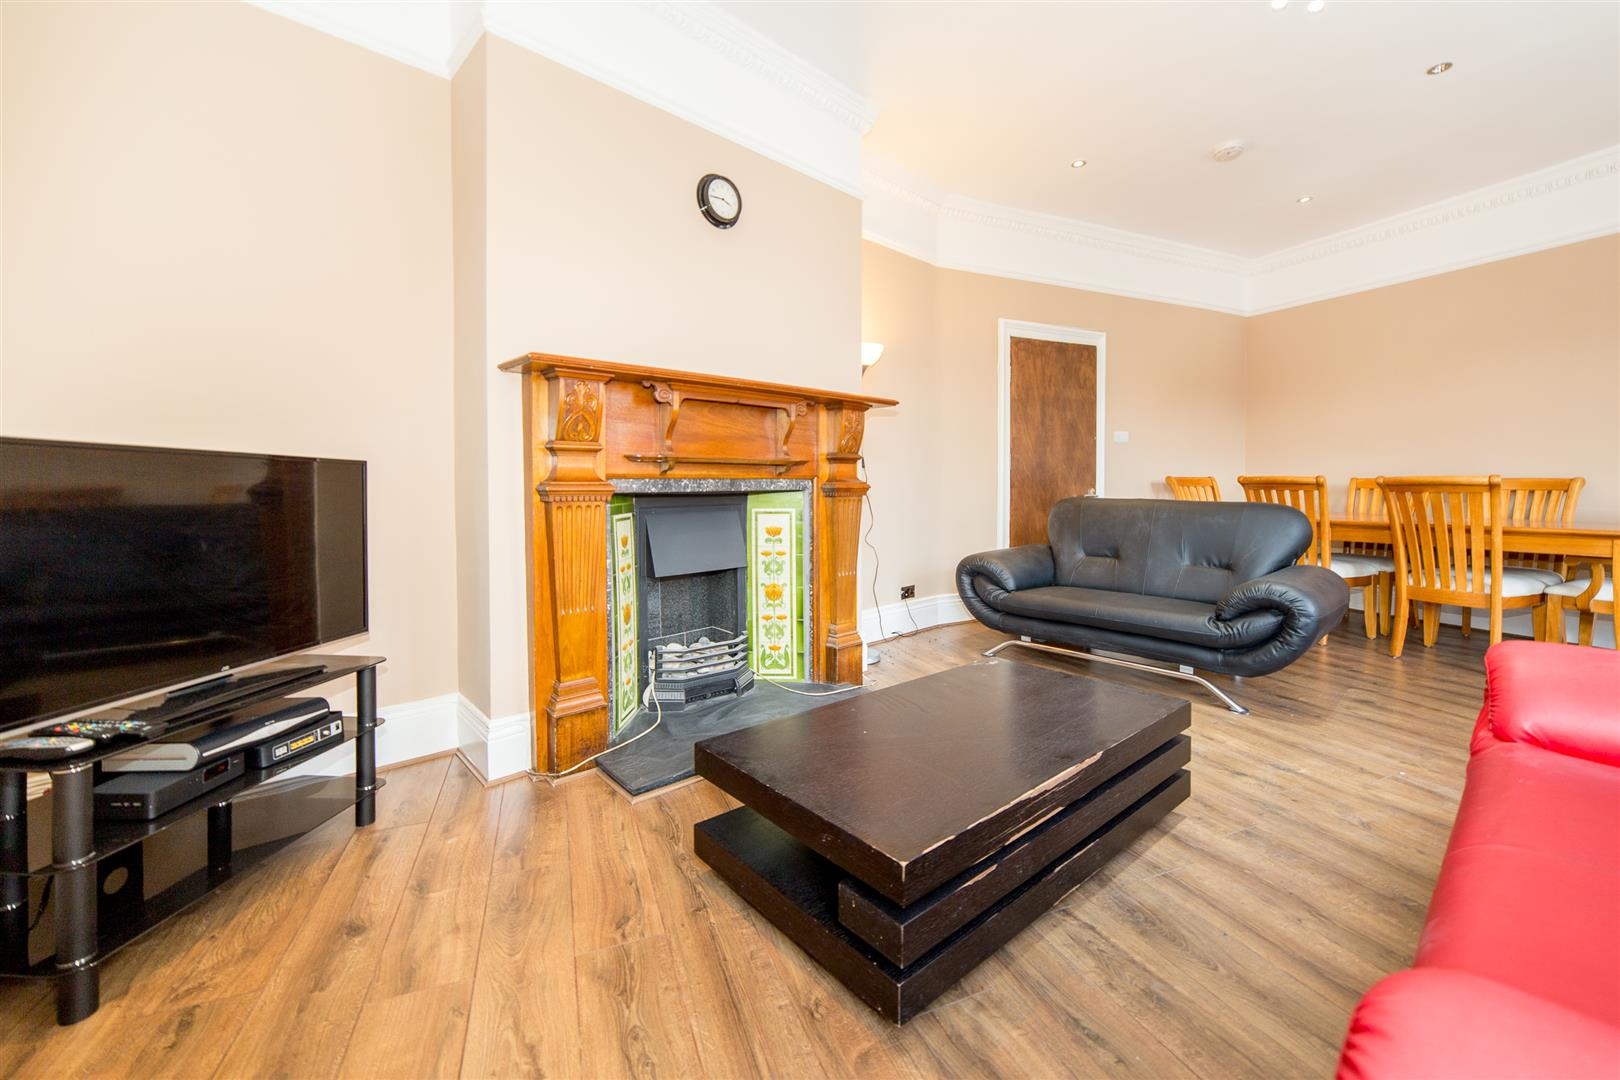 7 bed maisonette to rent in Jesmond, NE2 1LB, NE2